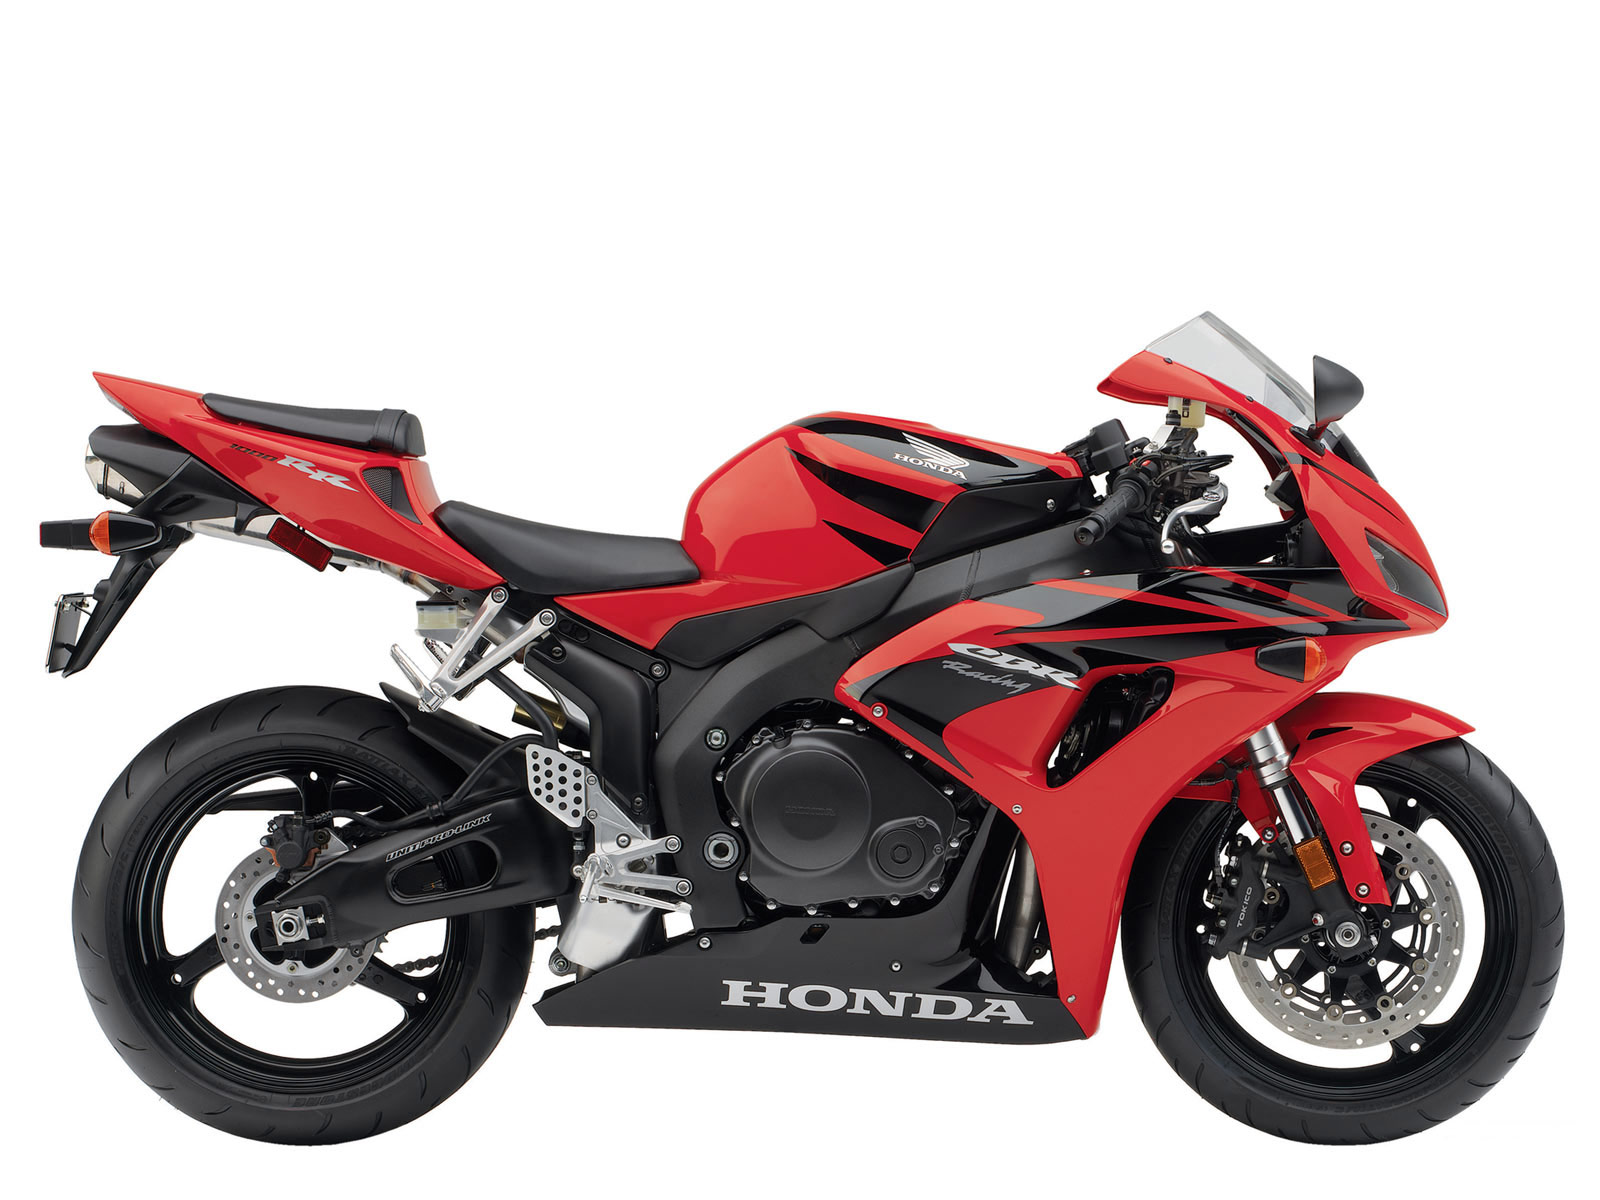 motorcycle big bike honda cbr1000rr 2007. Black Bedroom Furniture Sets. Home Design Ideas